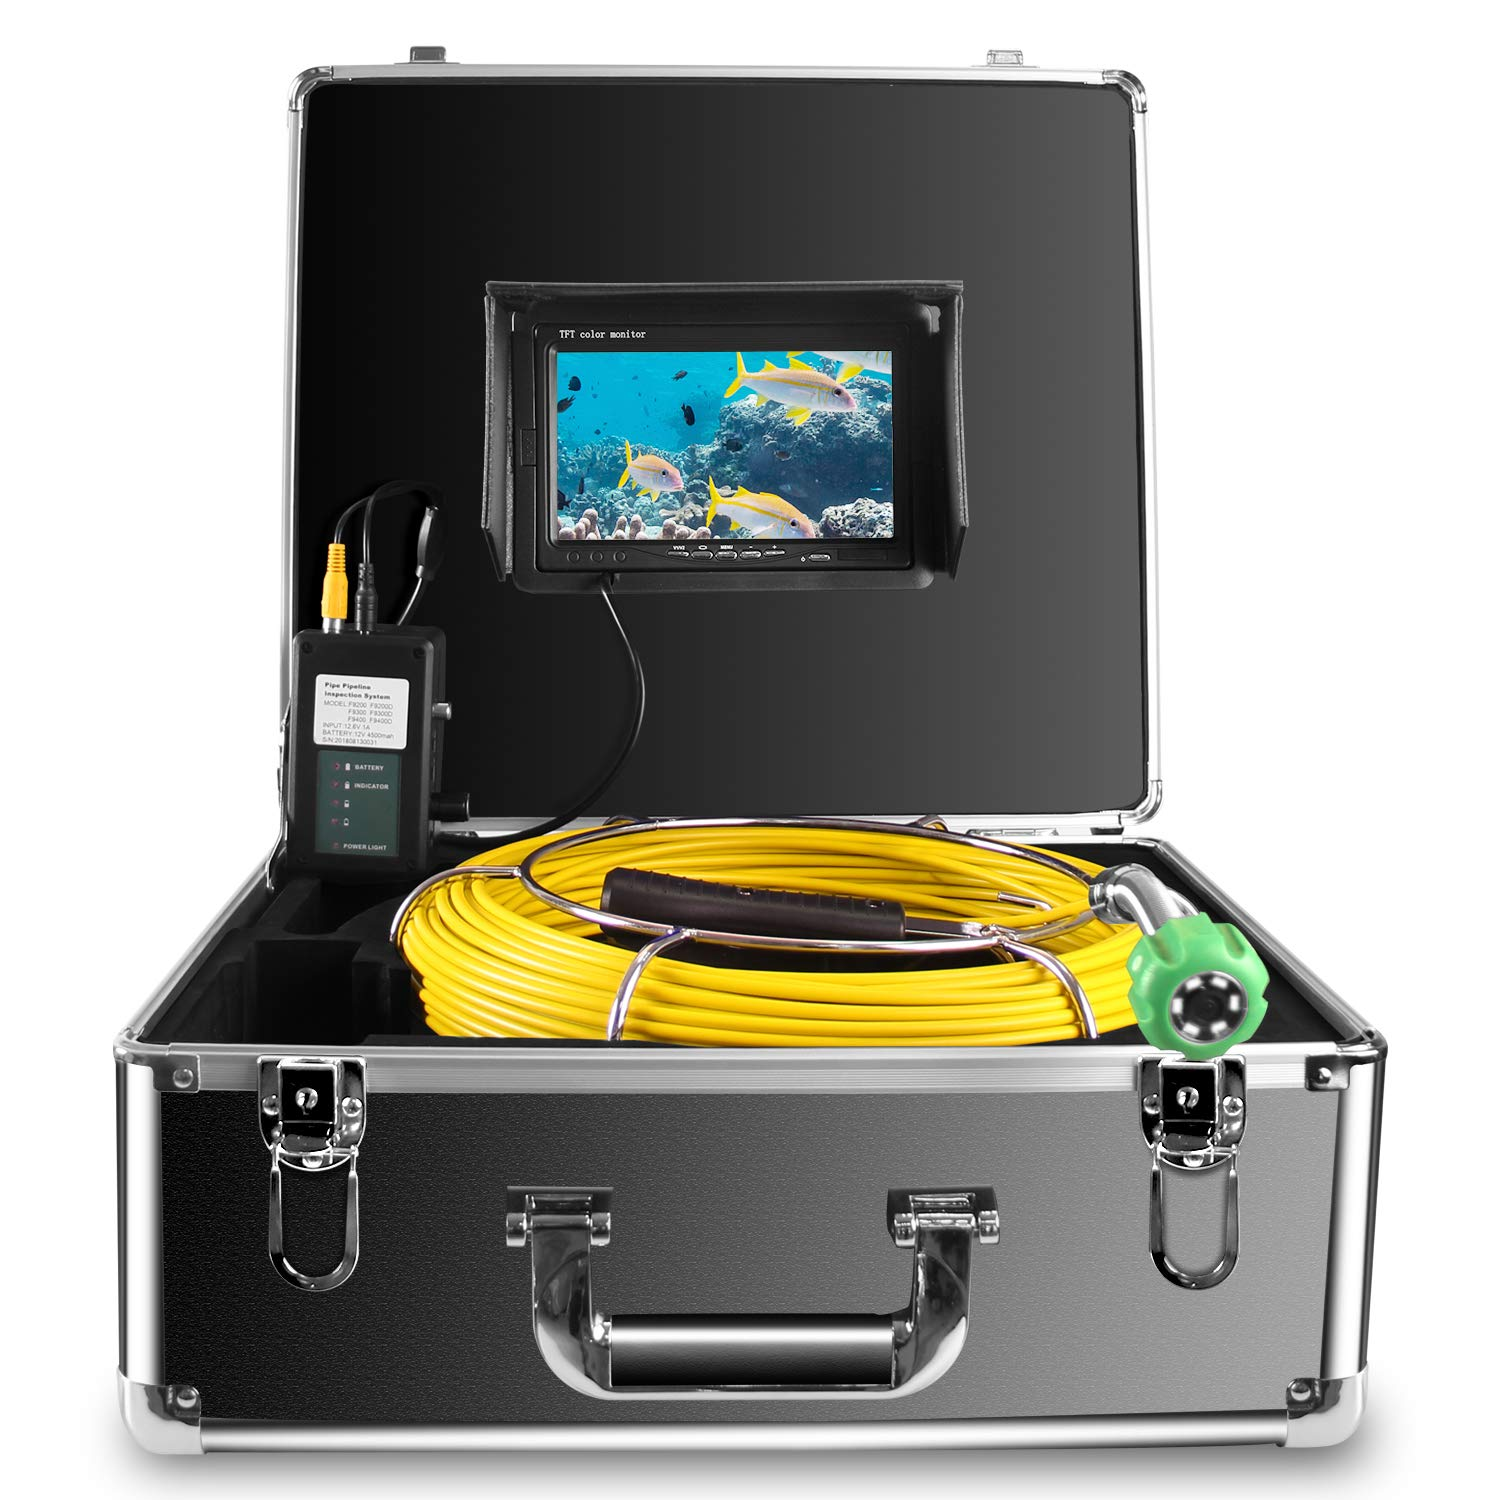 """Anysun Drain Pipe Sewer Video Inspection Camera - Sony CCD 7""""Color LCD Monitor DVR Recorder - DVR 30m/100ft 4GB, TF Endoscopy Video Snake Camera"""